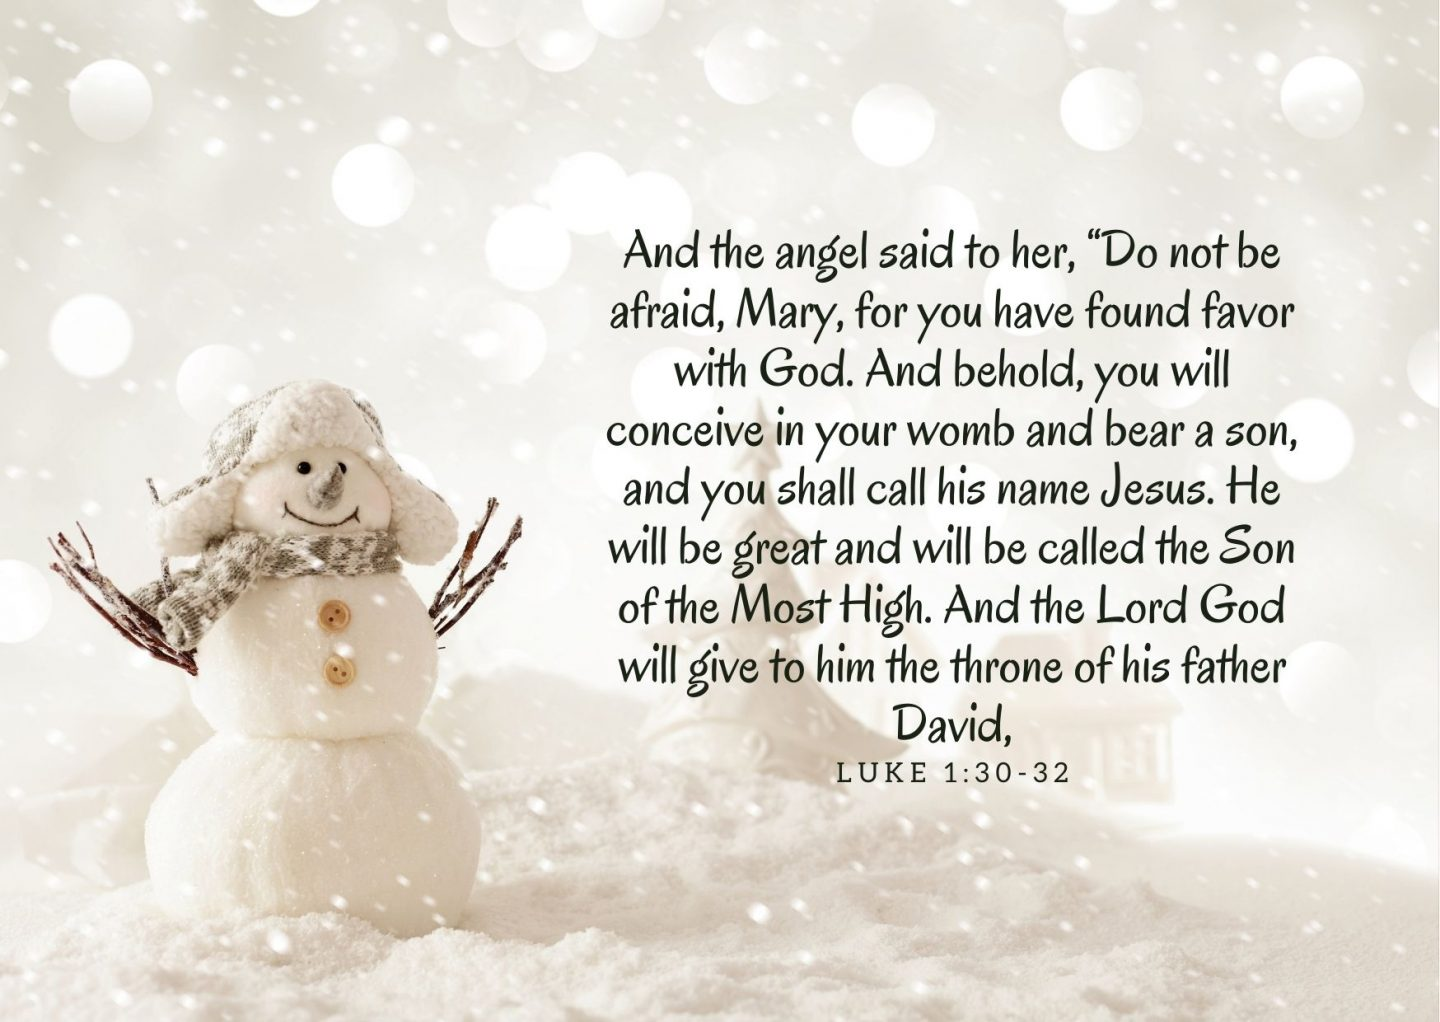 """And the angel said to her, """"Do not be afraid, Mary, for you have found favor with God. And behold, you will conceive in your womb and bear a son, and you shall call his name Jesus. He will be great and will be called the Son of the Most High. And the Lord God will give to him the throne of his father David, And the angel said to her, """"Do not be afraid, Mary, for you have found favor with God. And behold, you will conceive in your womb and bear a son, and you shall call his name Jesus. He will be great and will be called the Son of the Most High. And the Lord God will give to him the throne of his father David, Luke 1:30-32"""